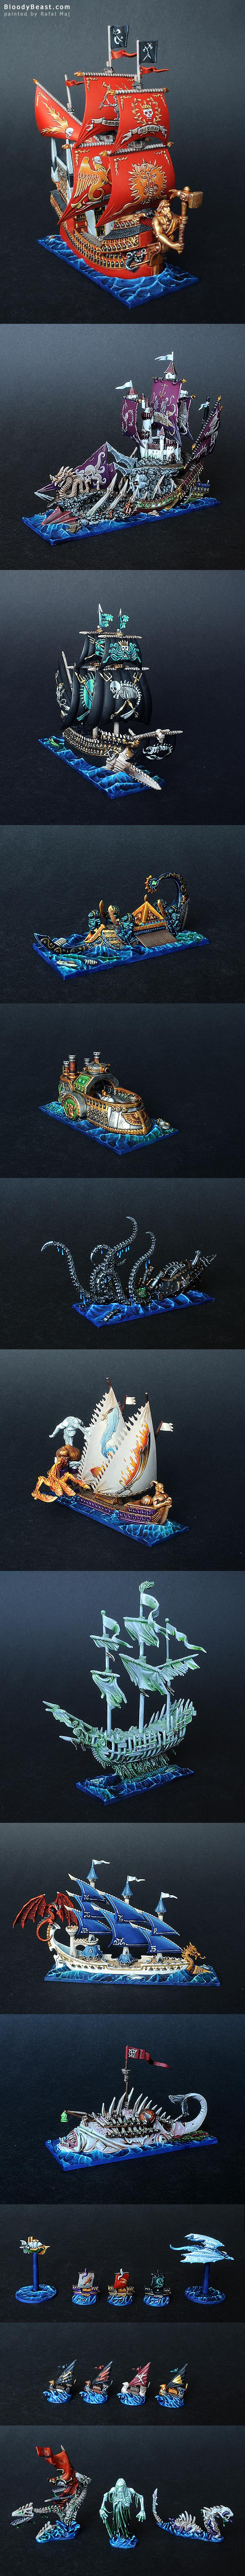 Dreadfleet painted by Rafal Maj (BloodyBeast.com)